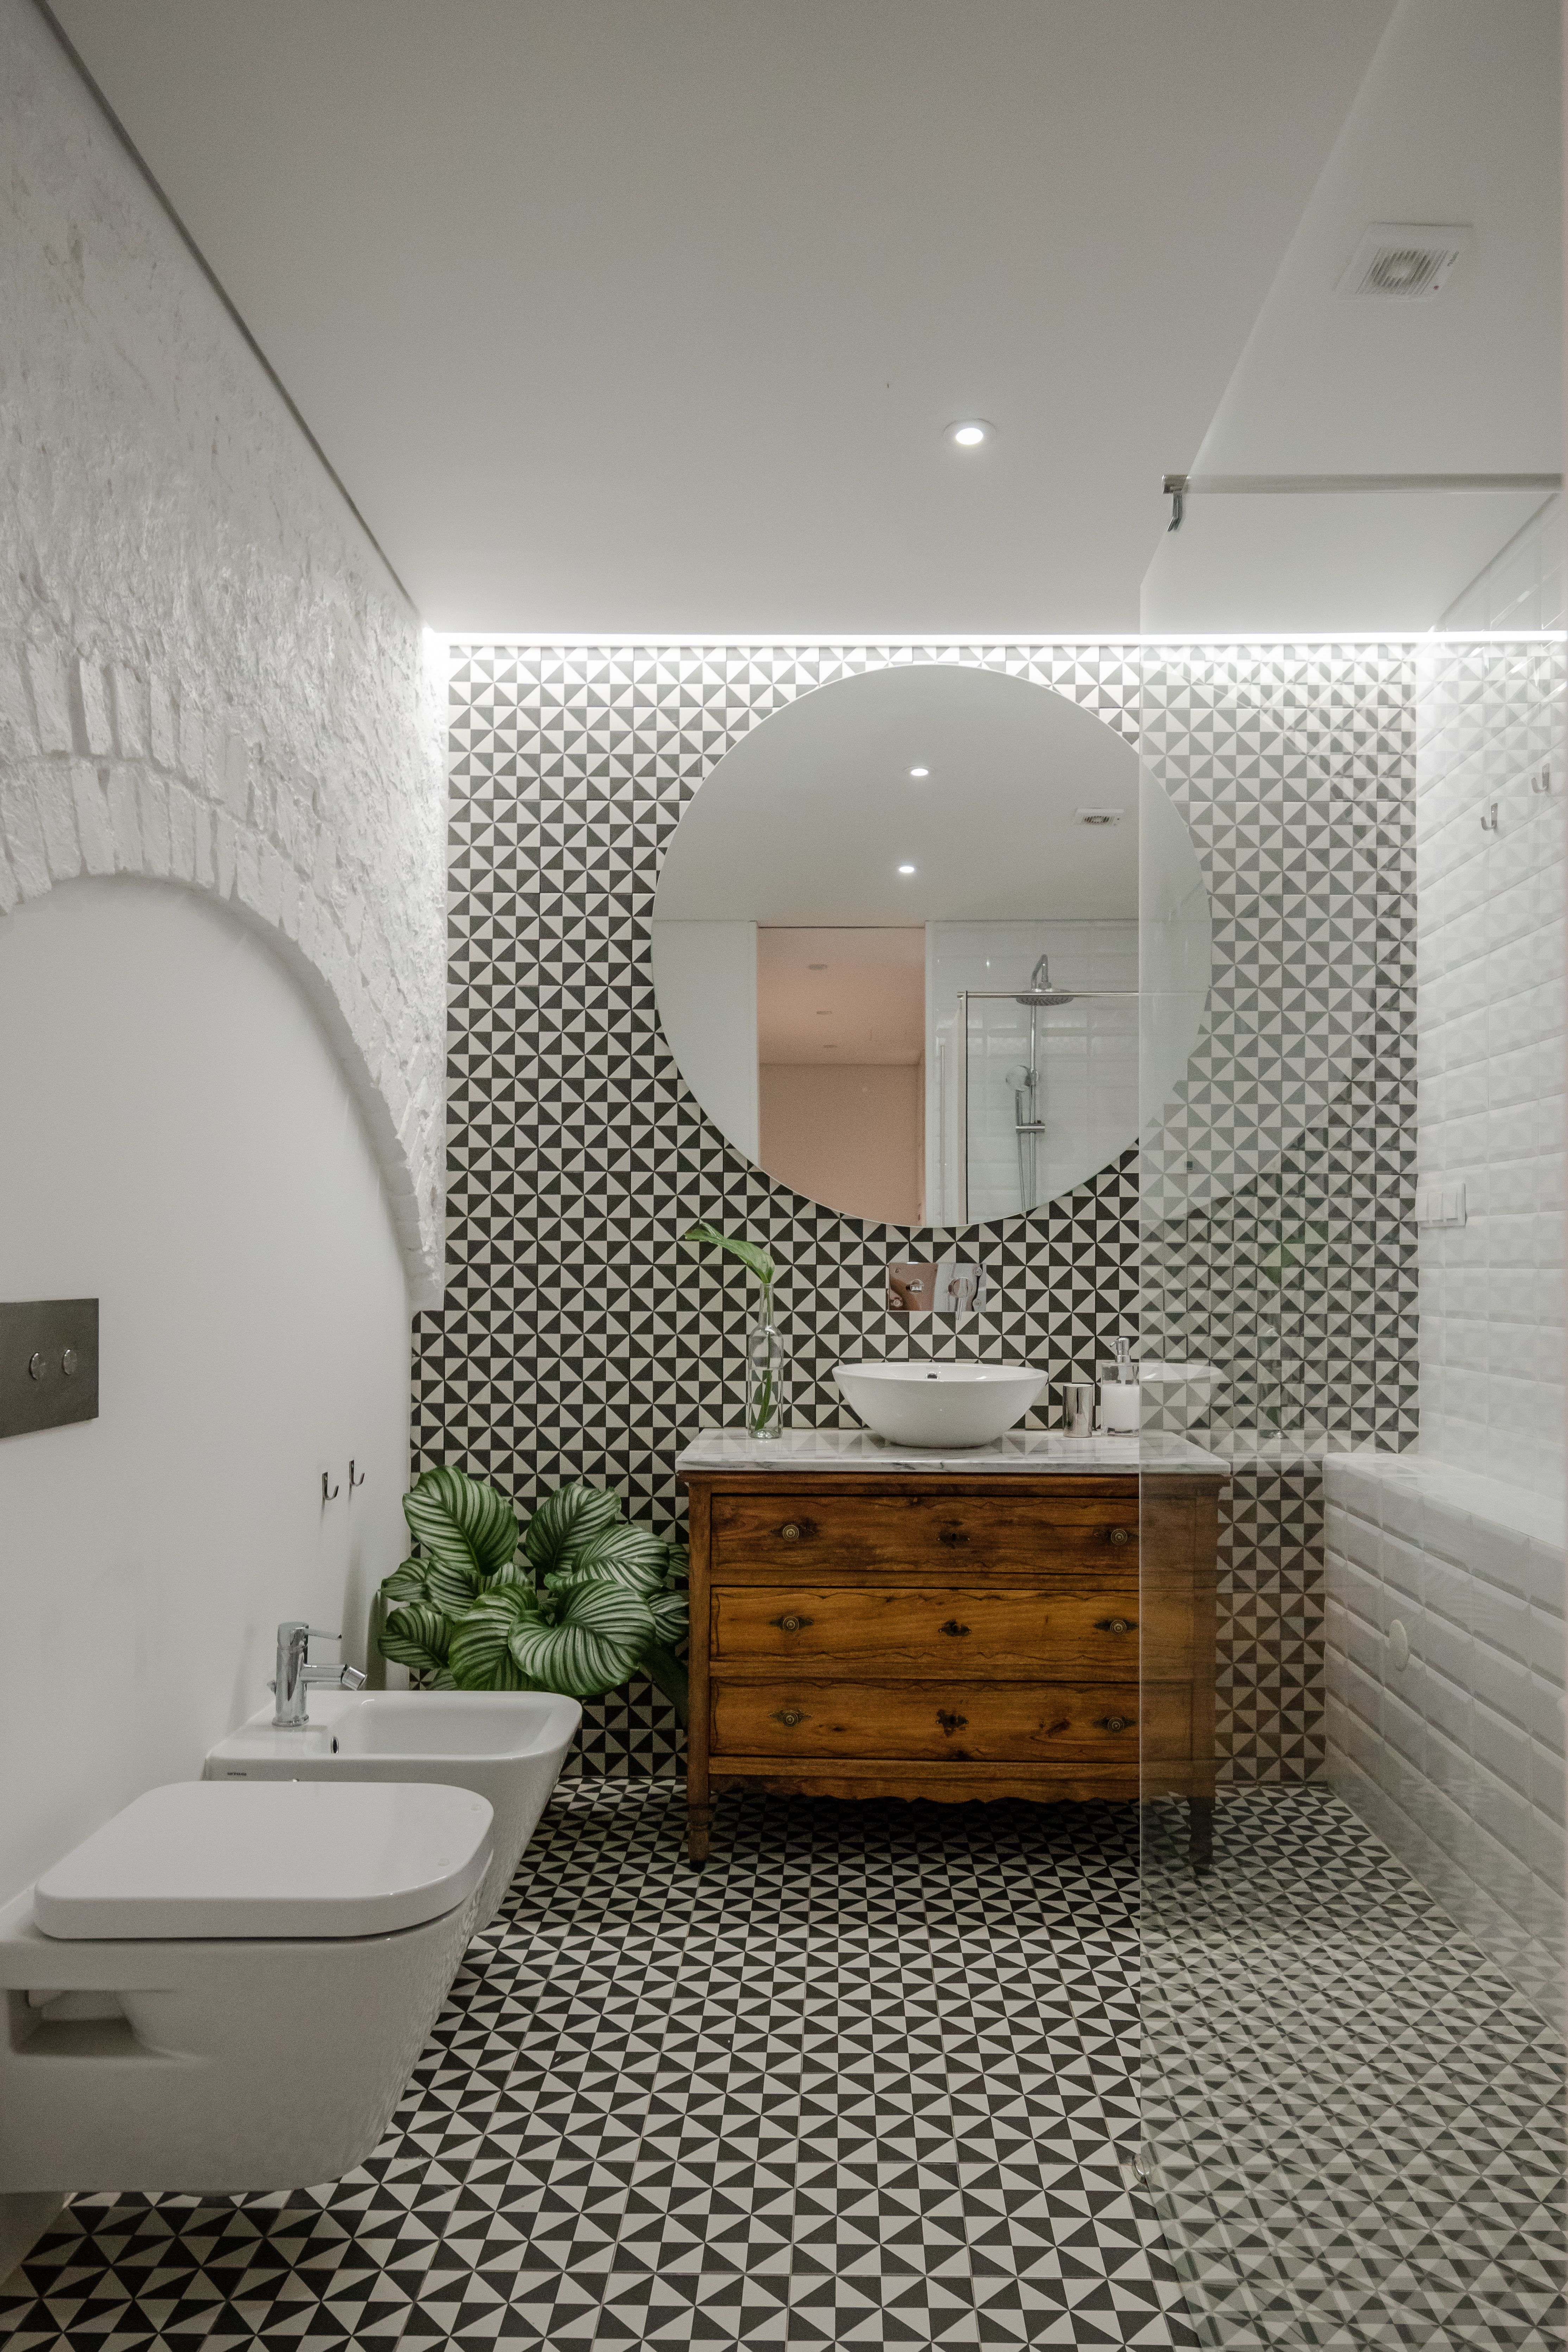 a carpentry workshop in portugal is reimagined as a minimalist home rh pinterest com Repurposed Floor Mirror Modge Podge Ceramic Tiles